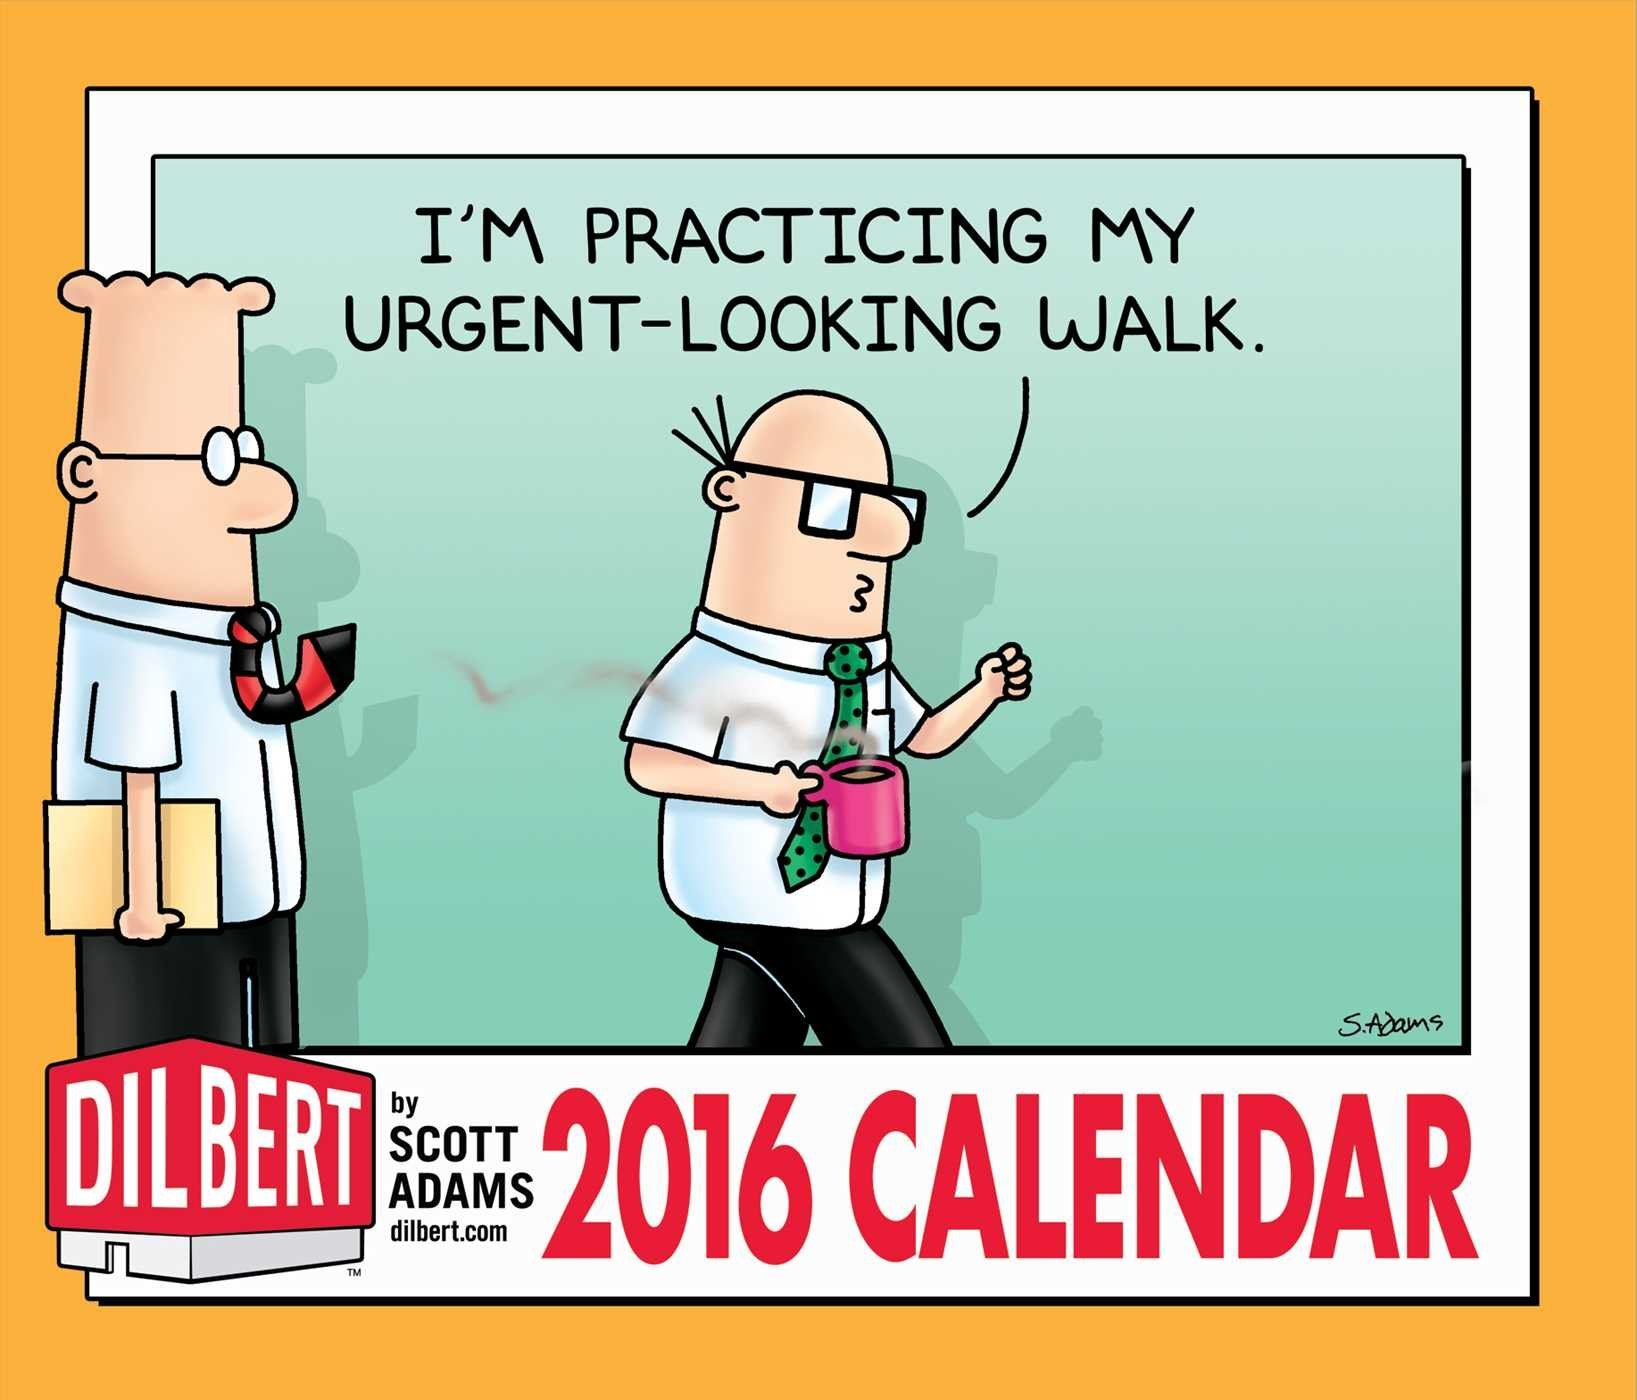 Top 9 Best Funny Day To Calendars 2018 Calendarsdesk Calendarsdilbert